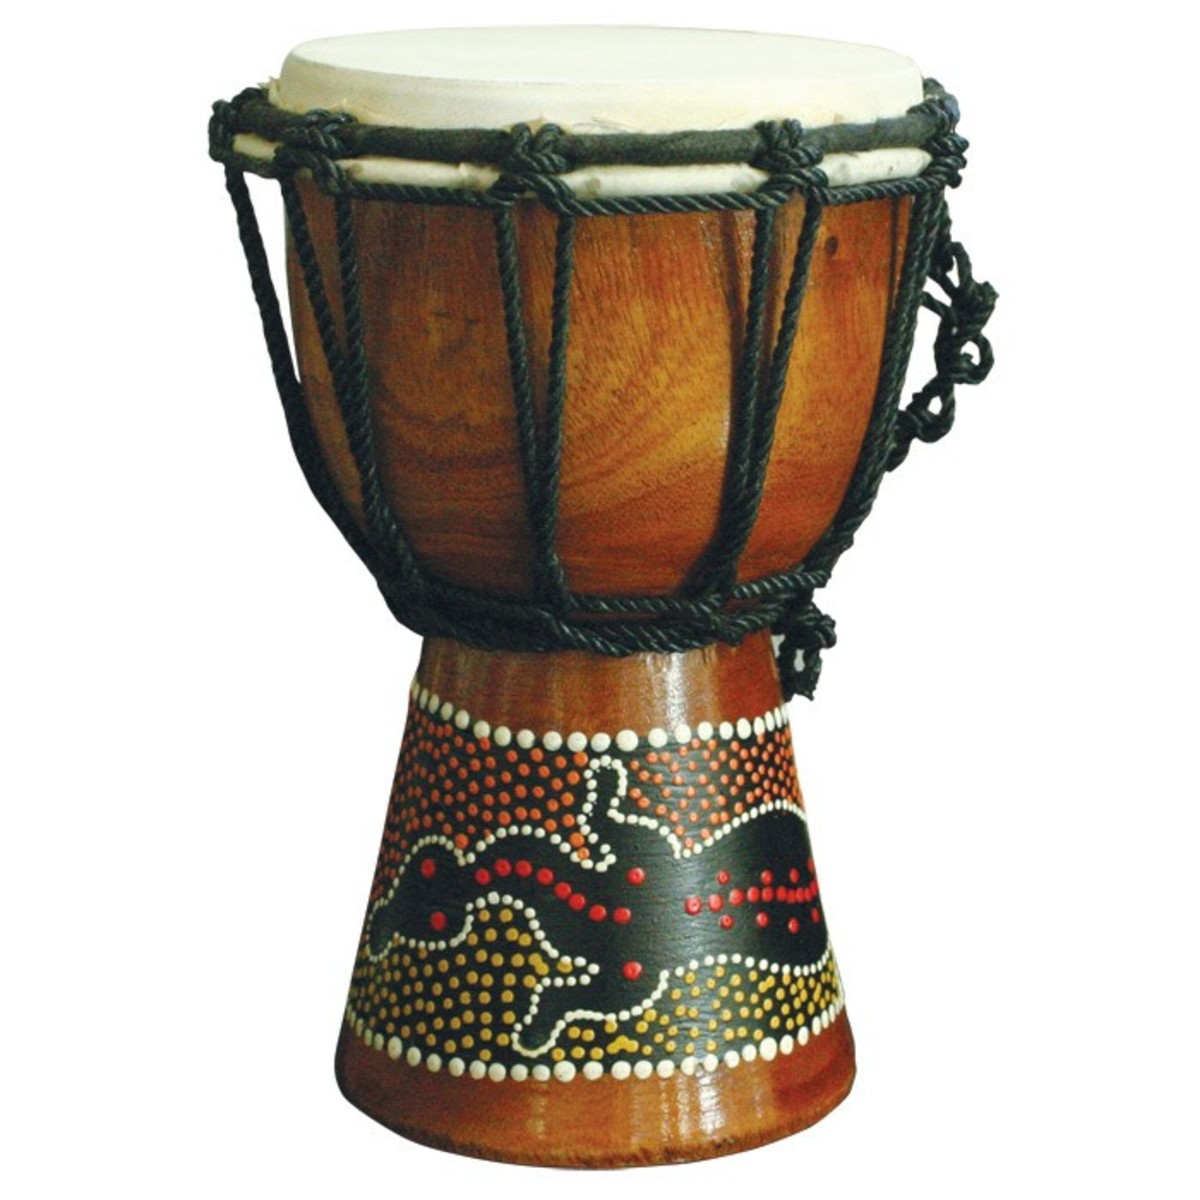 The Talking Drum: Kalangu, Gangan, and Odondo | Spinditty